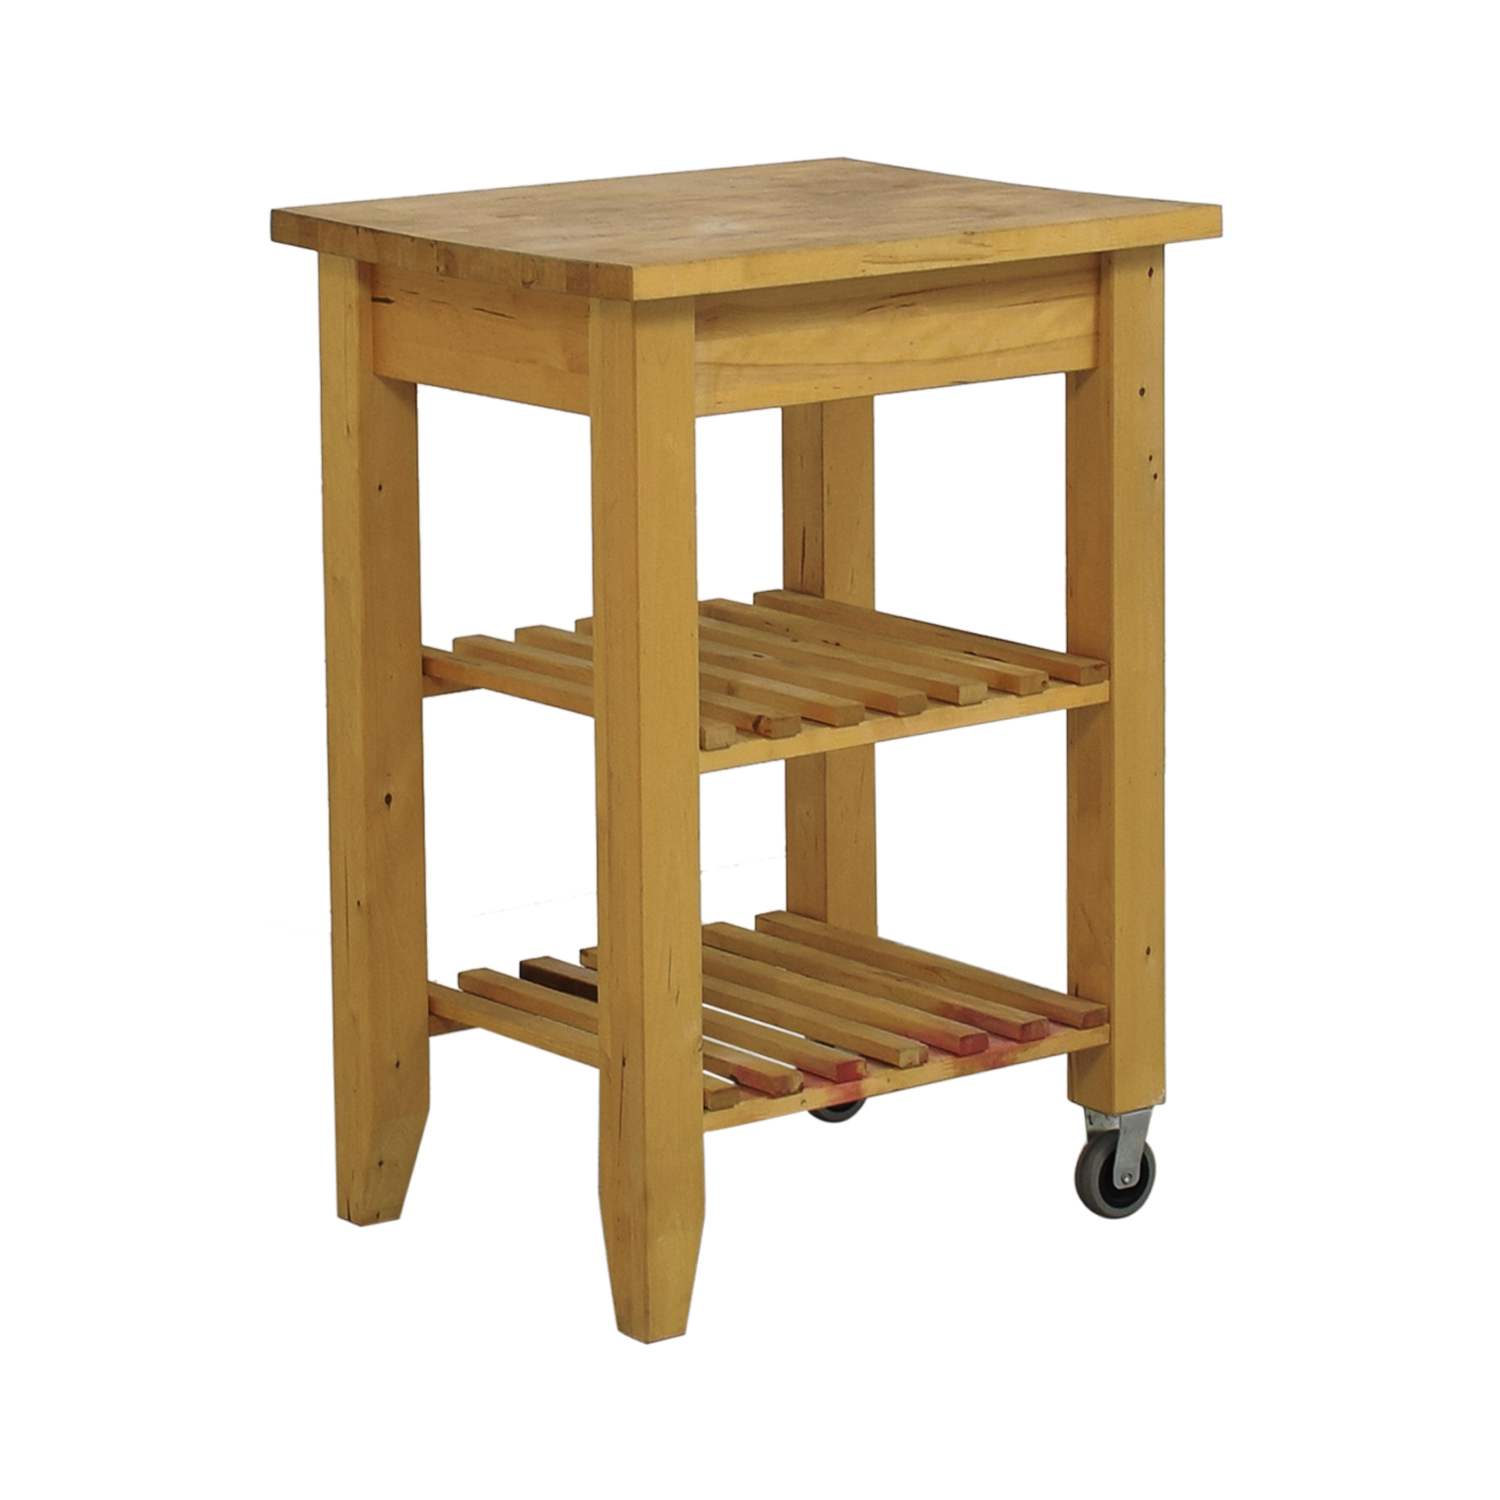 Ikea Kitchen Top 66 Off Ikea Ikea Butcher Block Kitchen Cart With